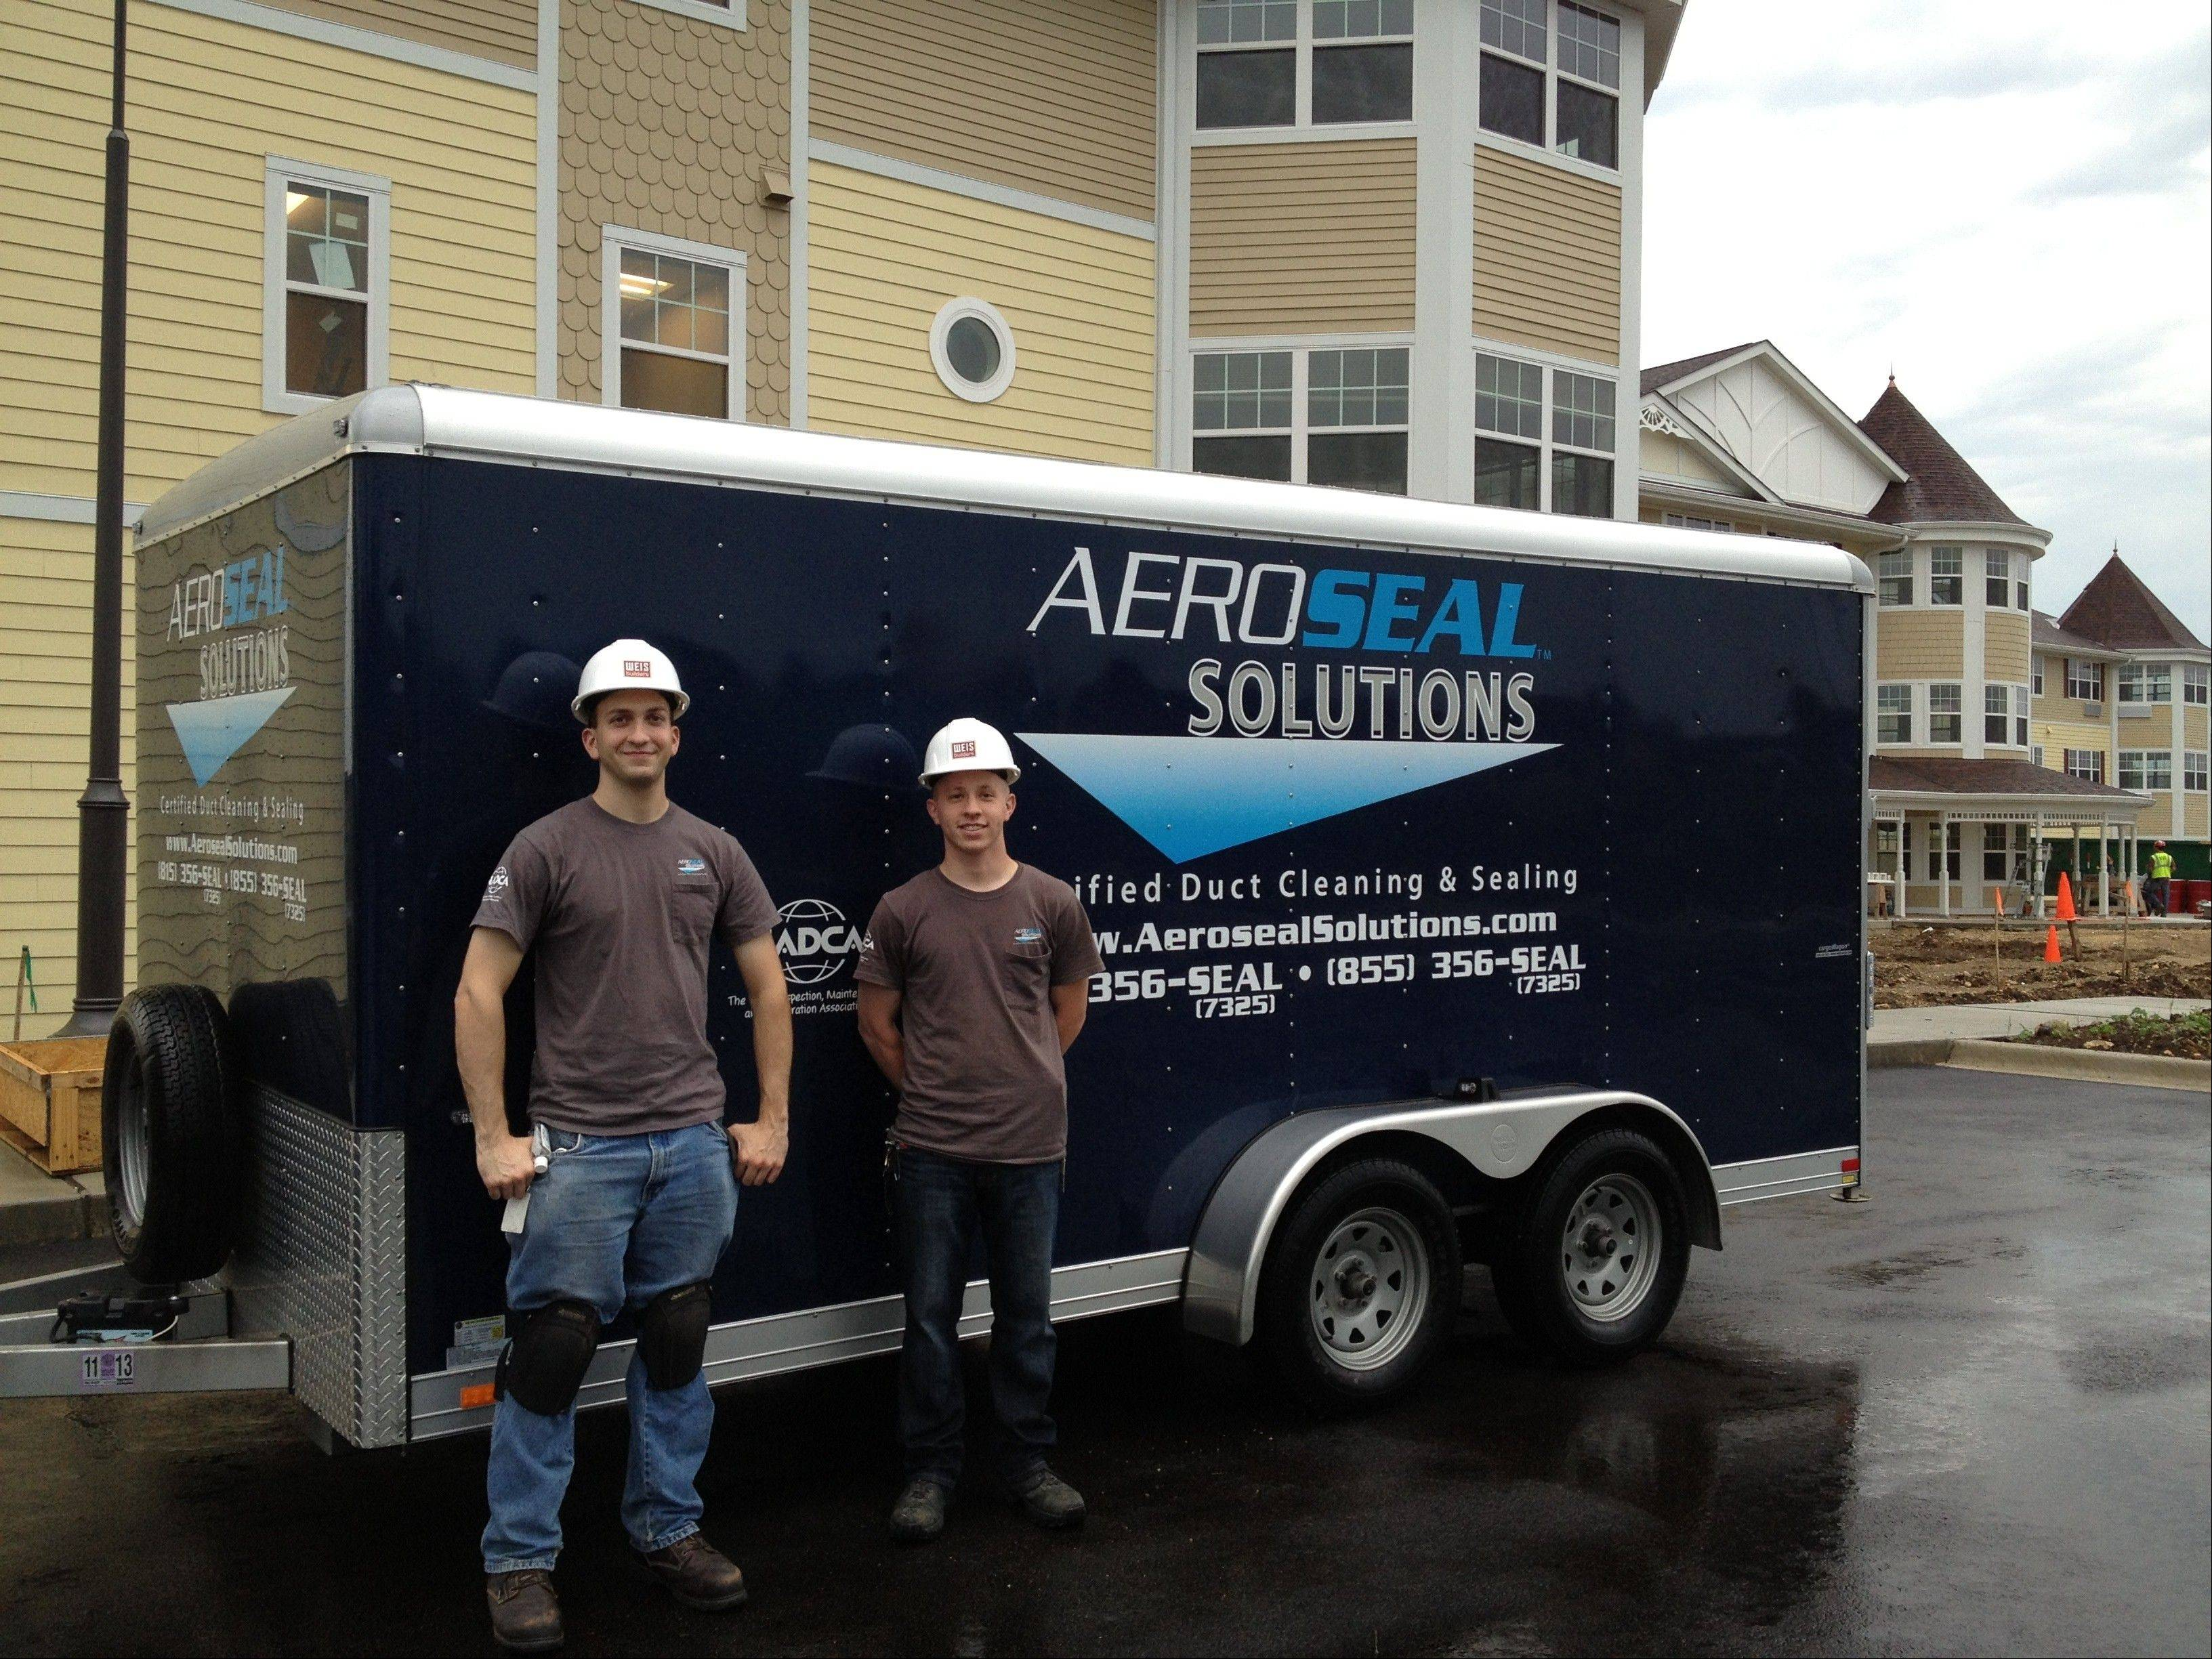 Aeroseal Solutions, based in Crystal Lake, sends trained staff to seal a home�s ductwork system.